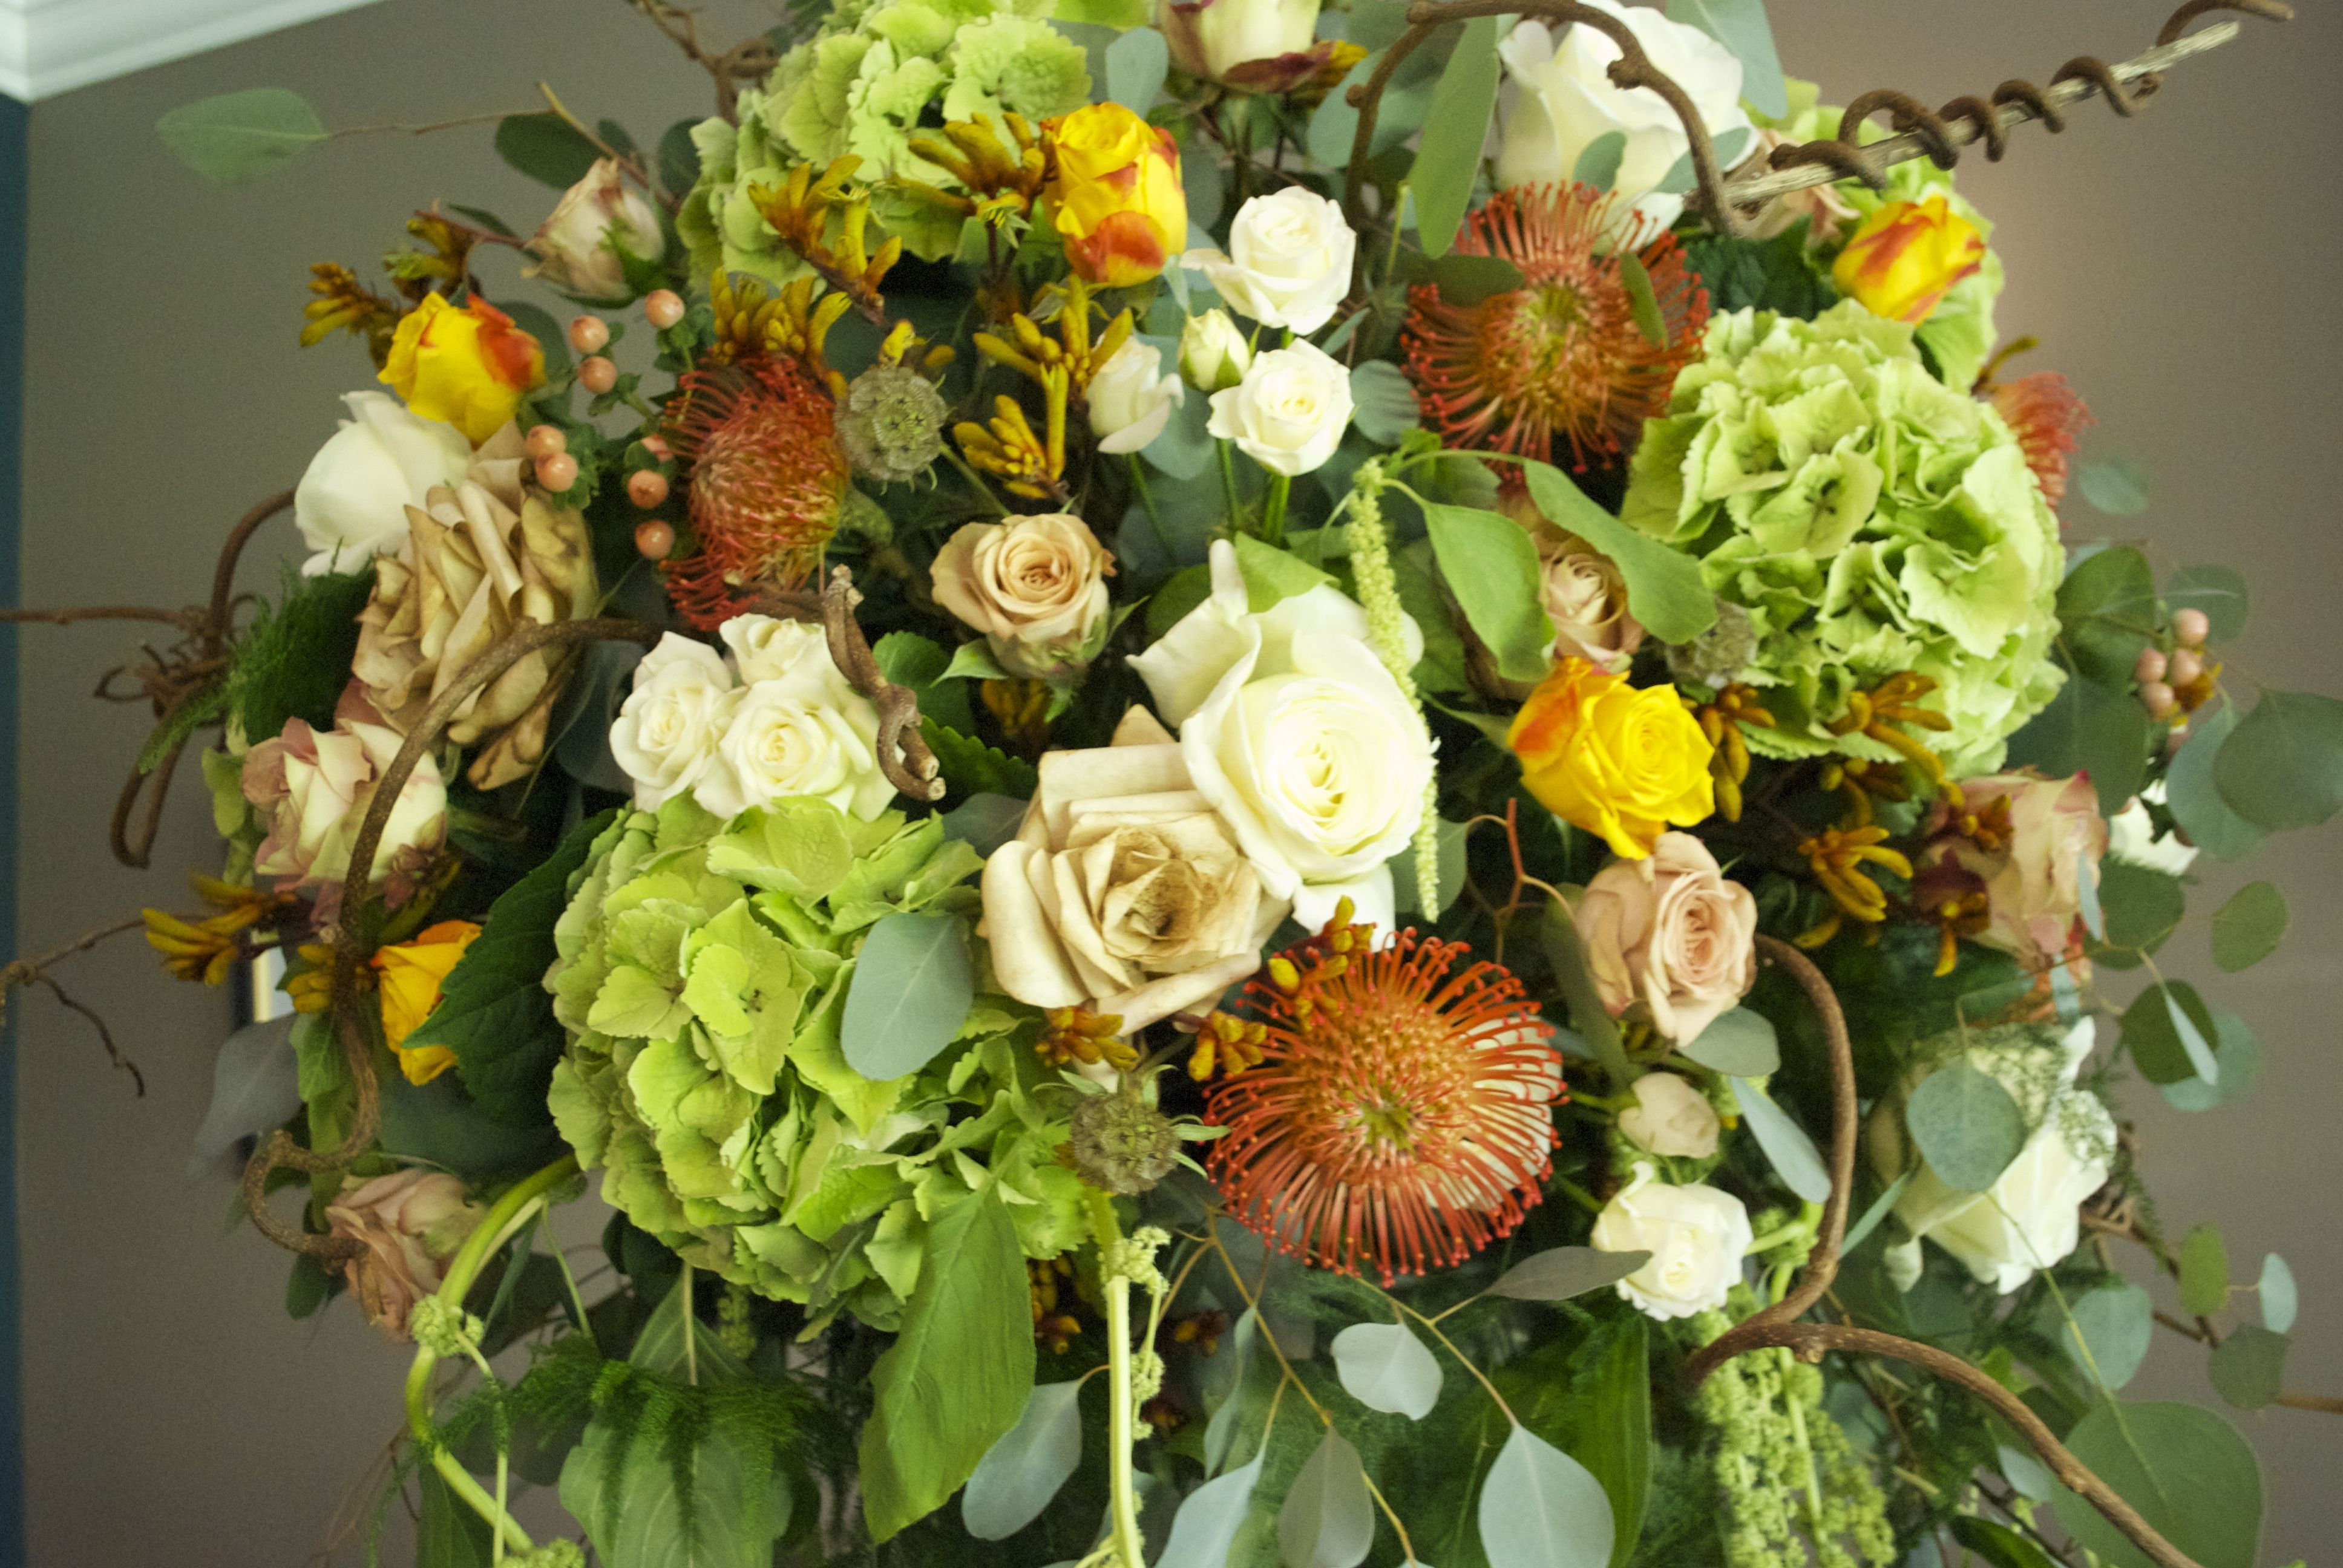 Creators Of Bespoke Flower And Styling Schemes For Weddings Events Showcased At Venues Across SurreyHampshire Berkshire